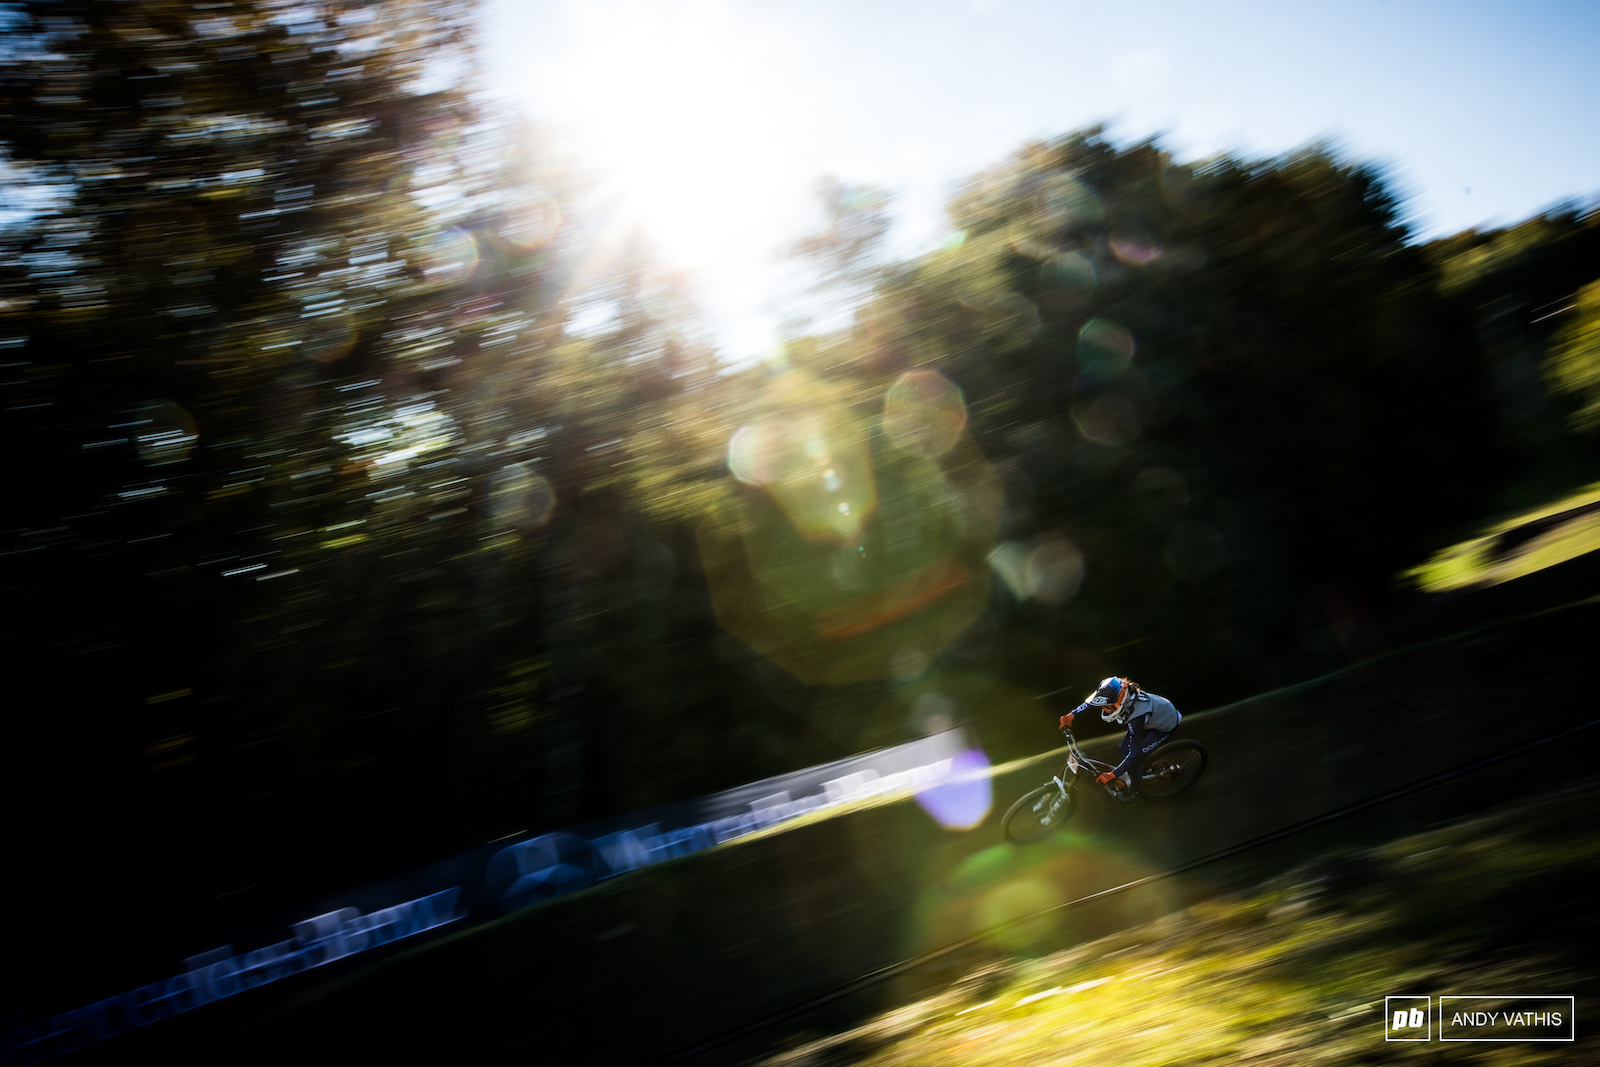 Camille Balanche looked on pace in this morning sun. The World Champ will be trying to back her performance from Leogang.